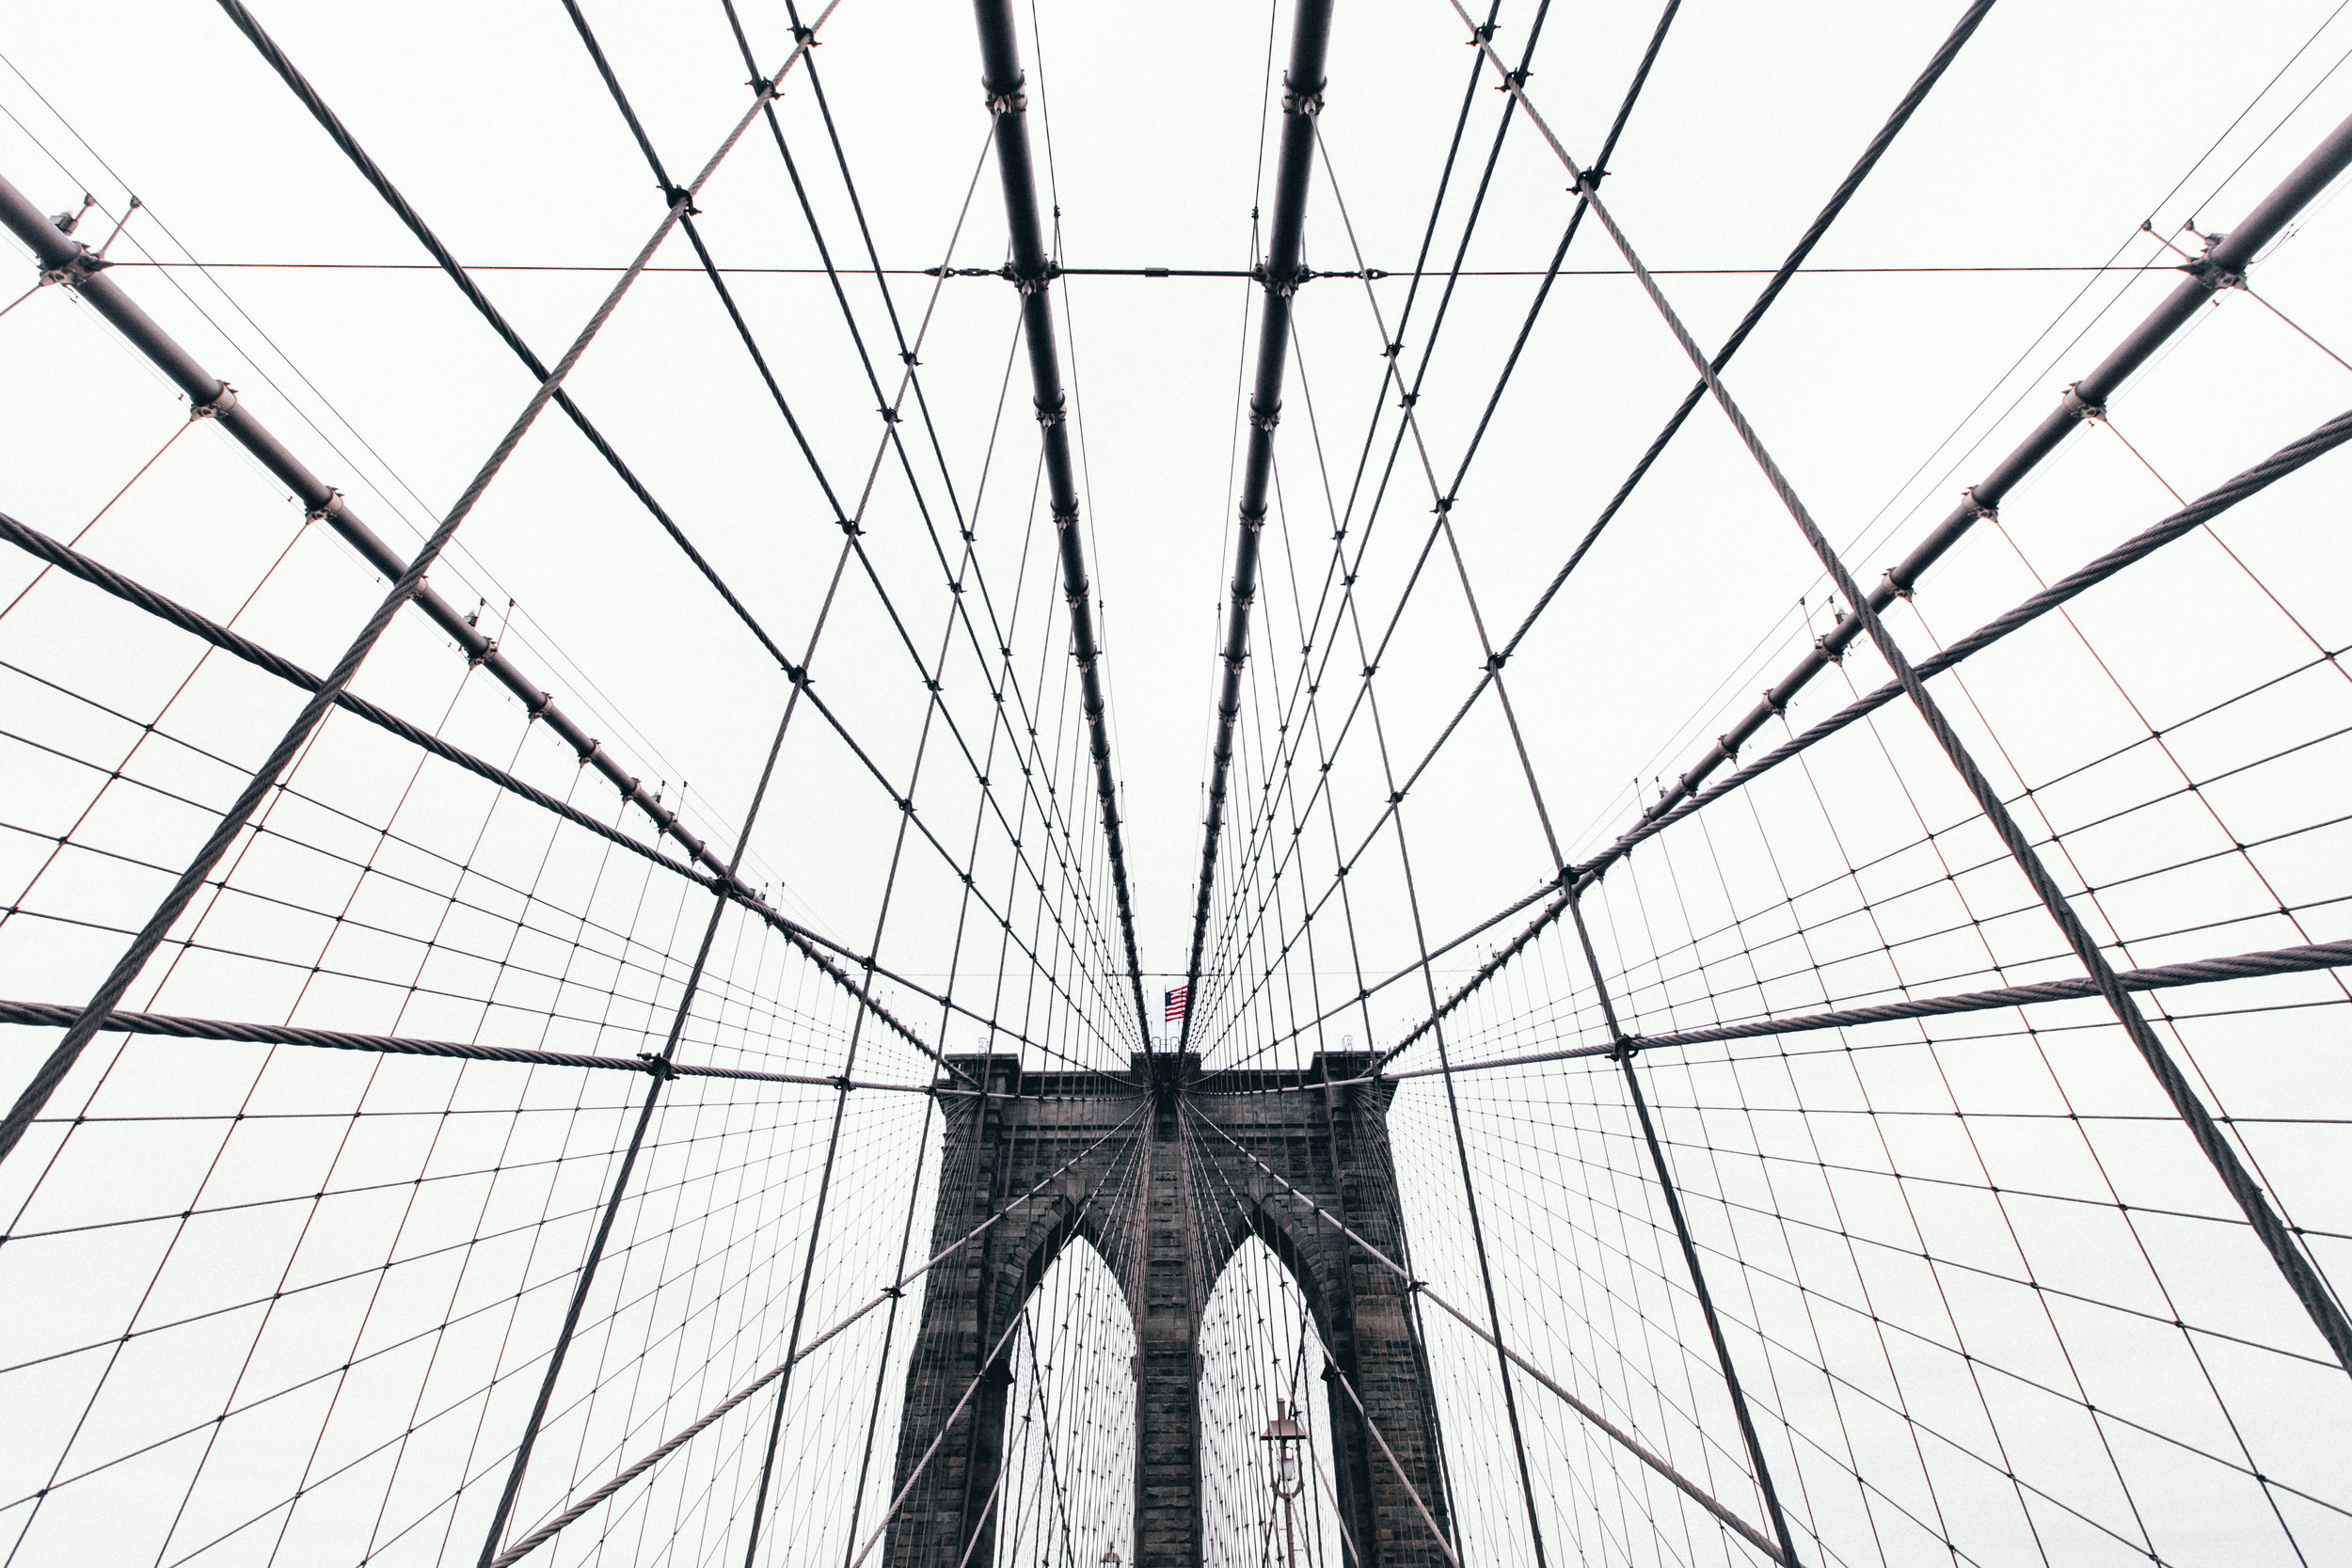 BrooklynBridge_Lines.jpg